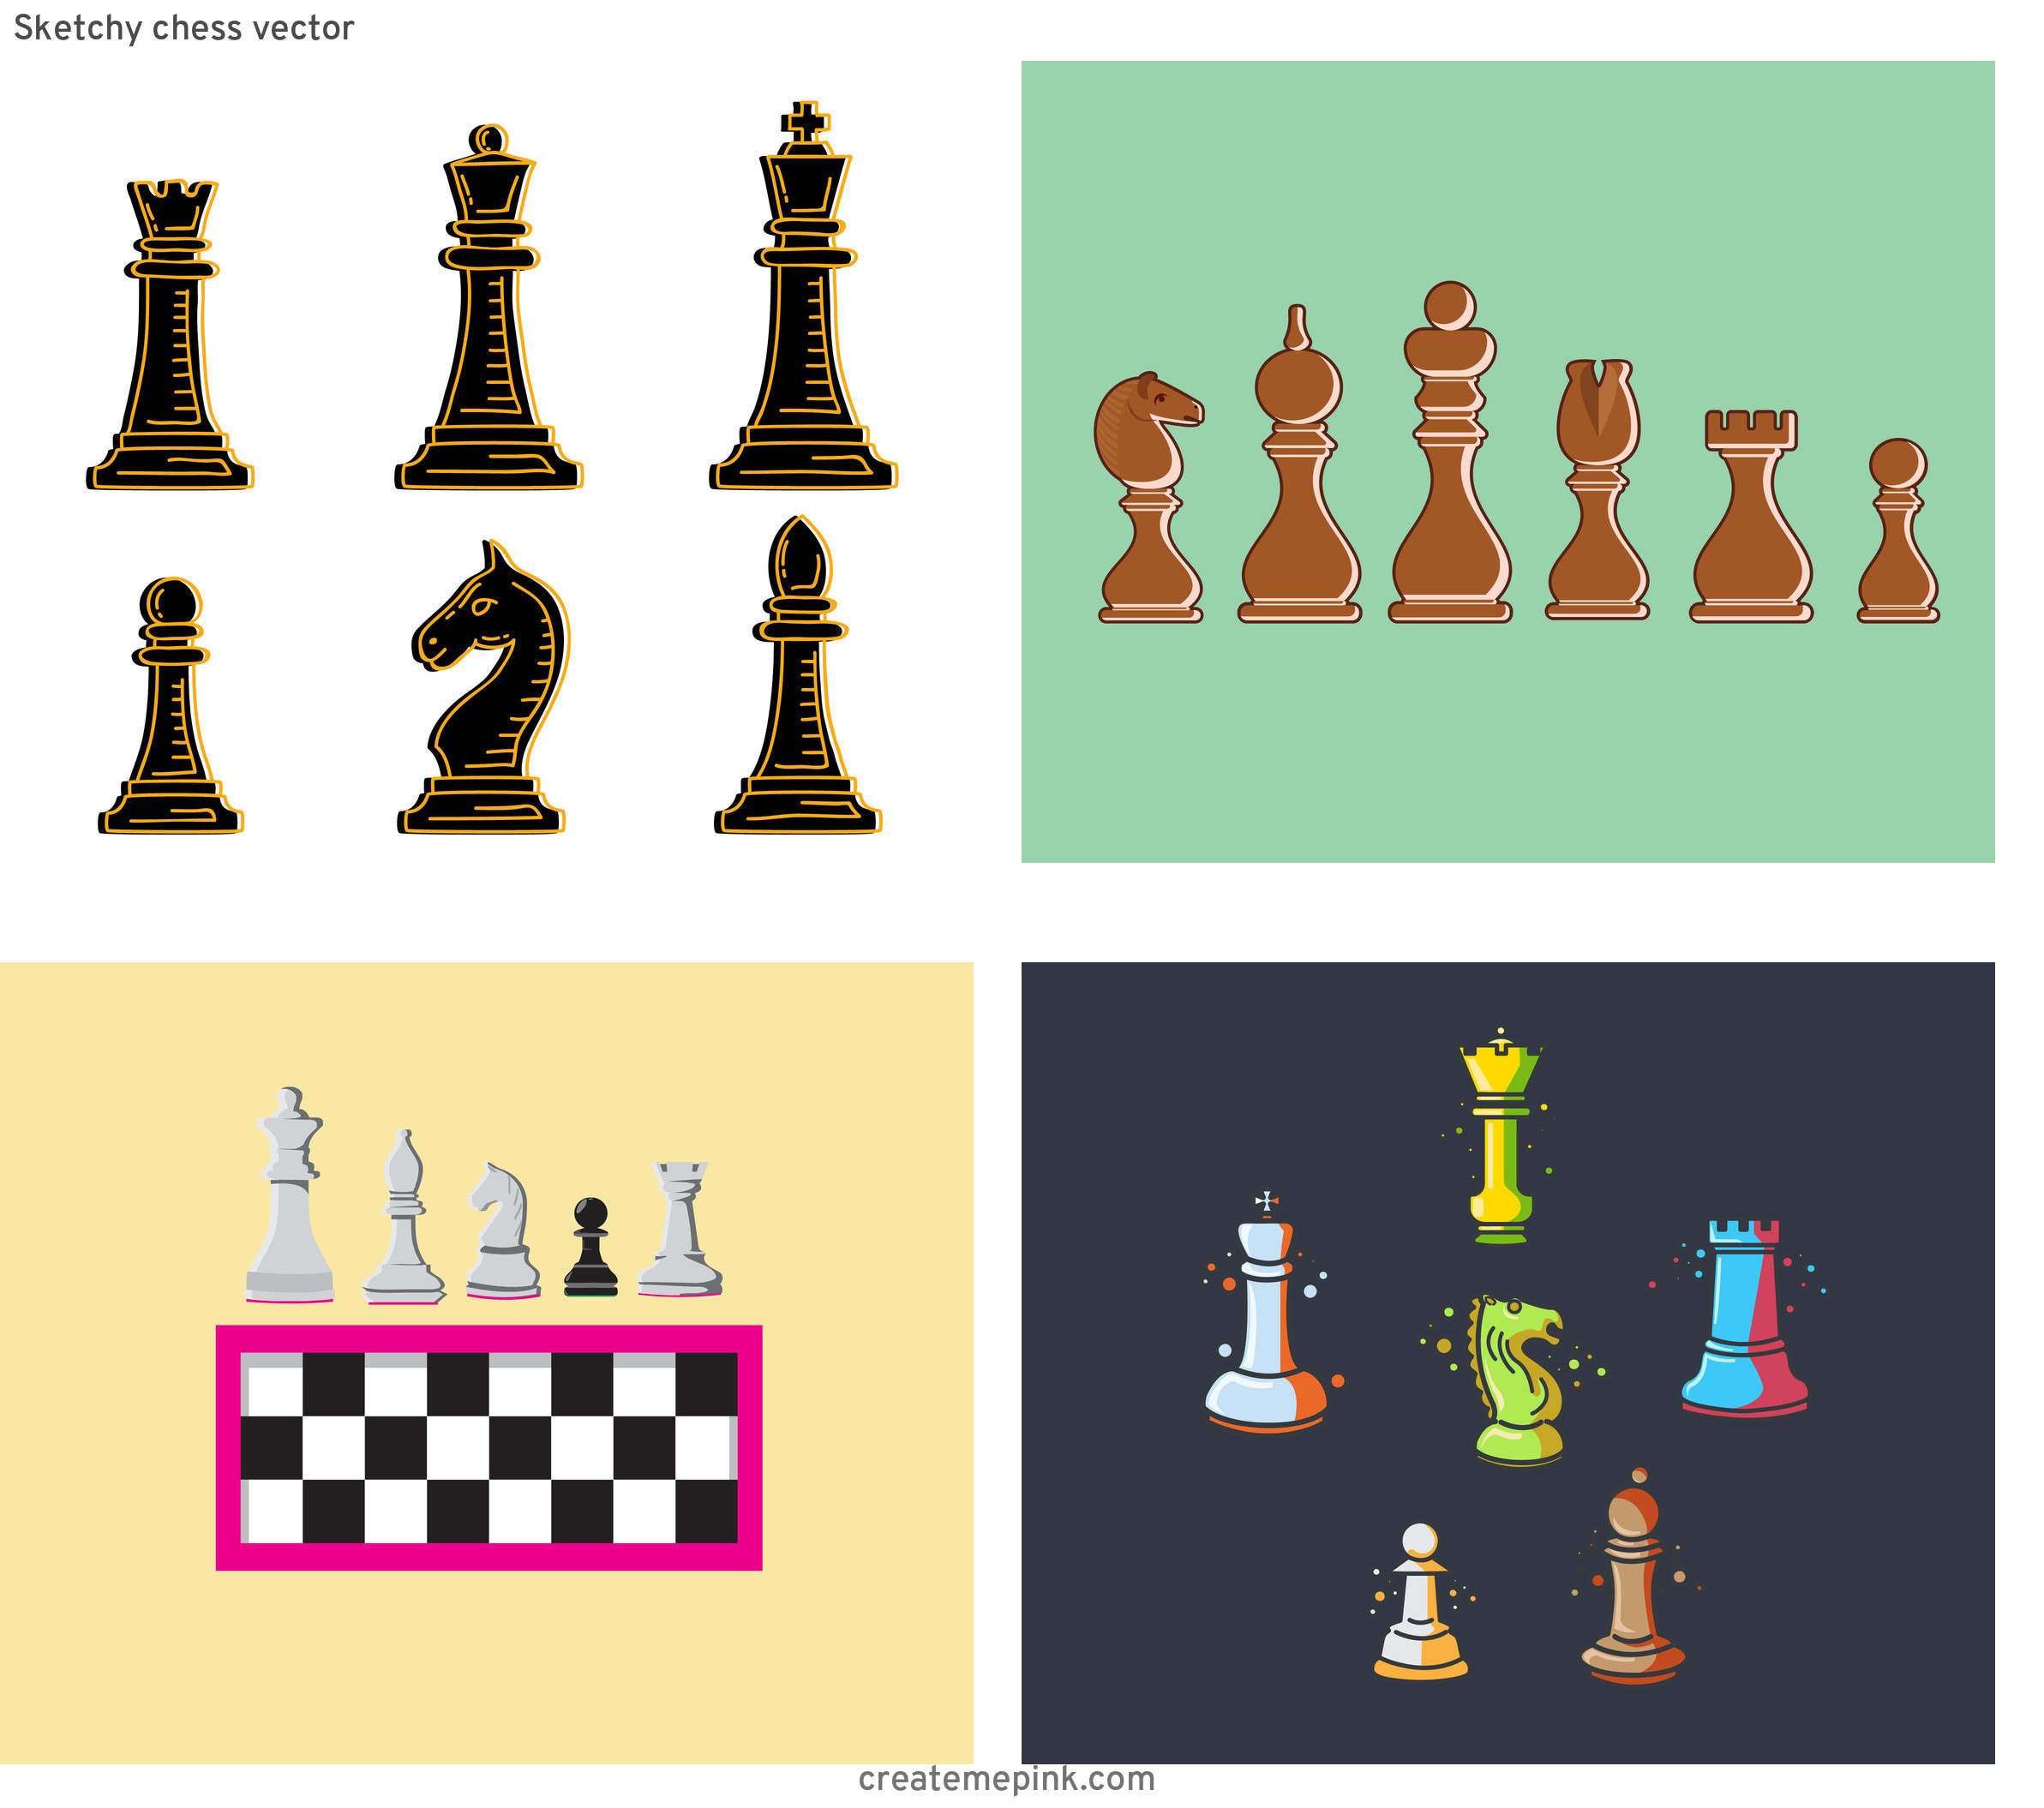 Chess Vector Graphic: Sketchy Chess Vector